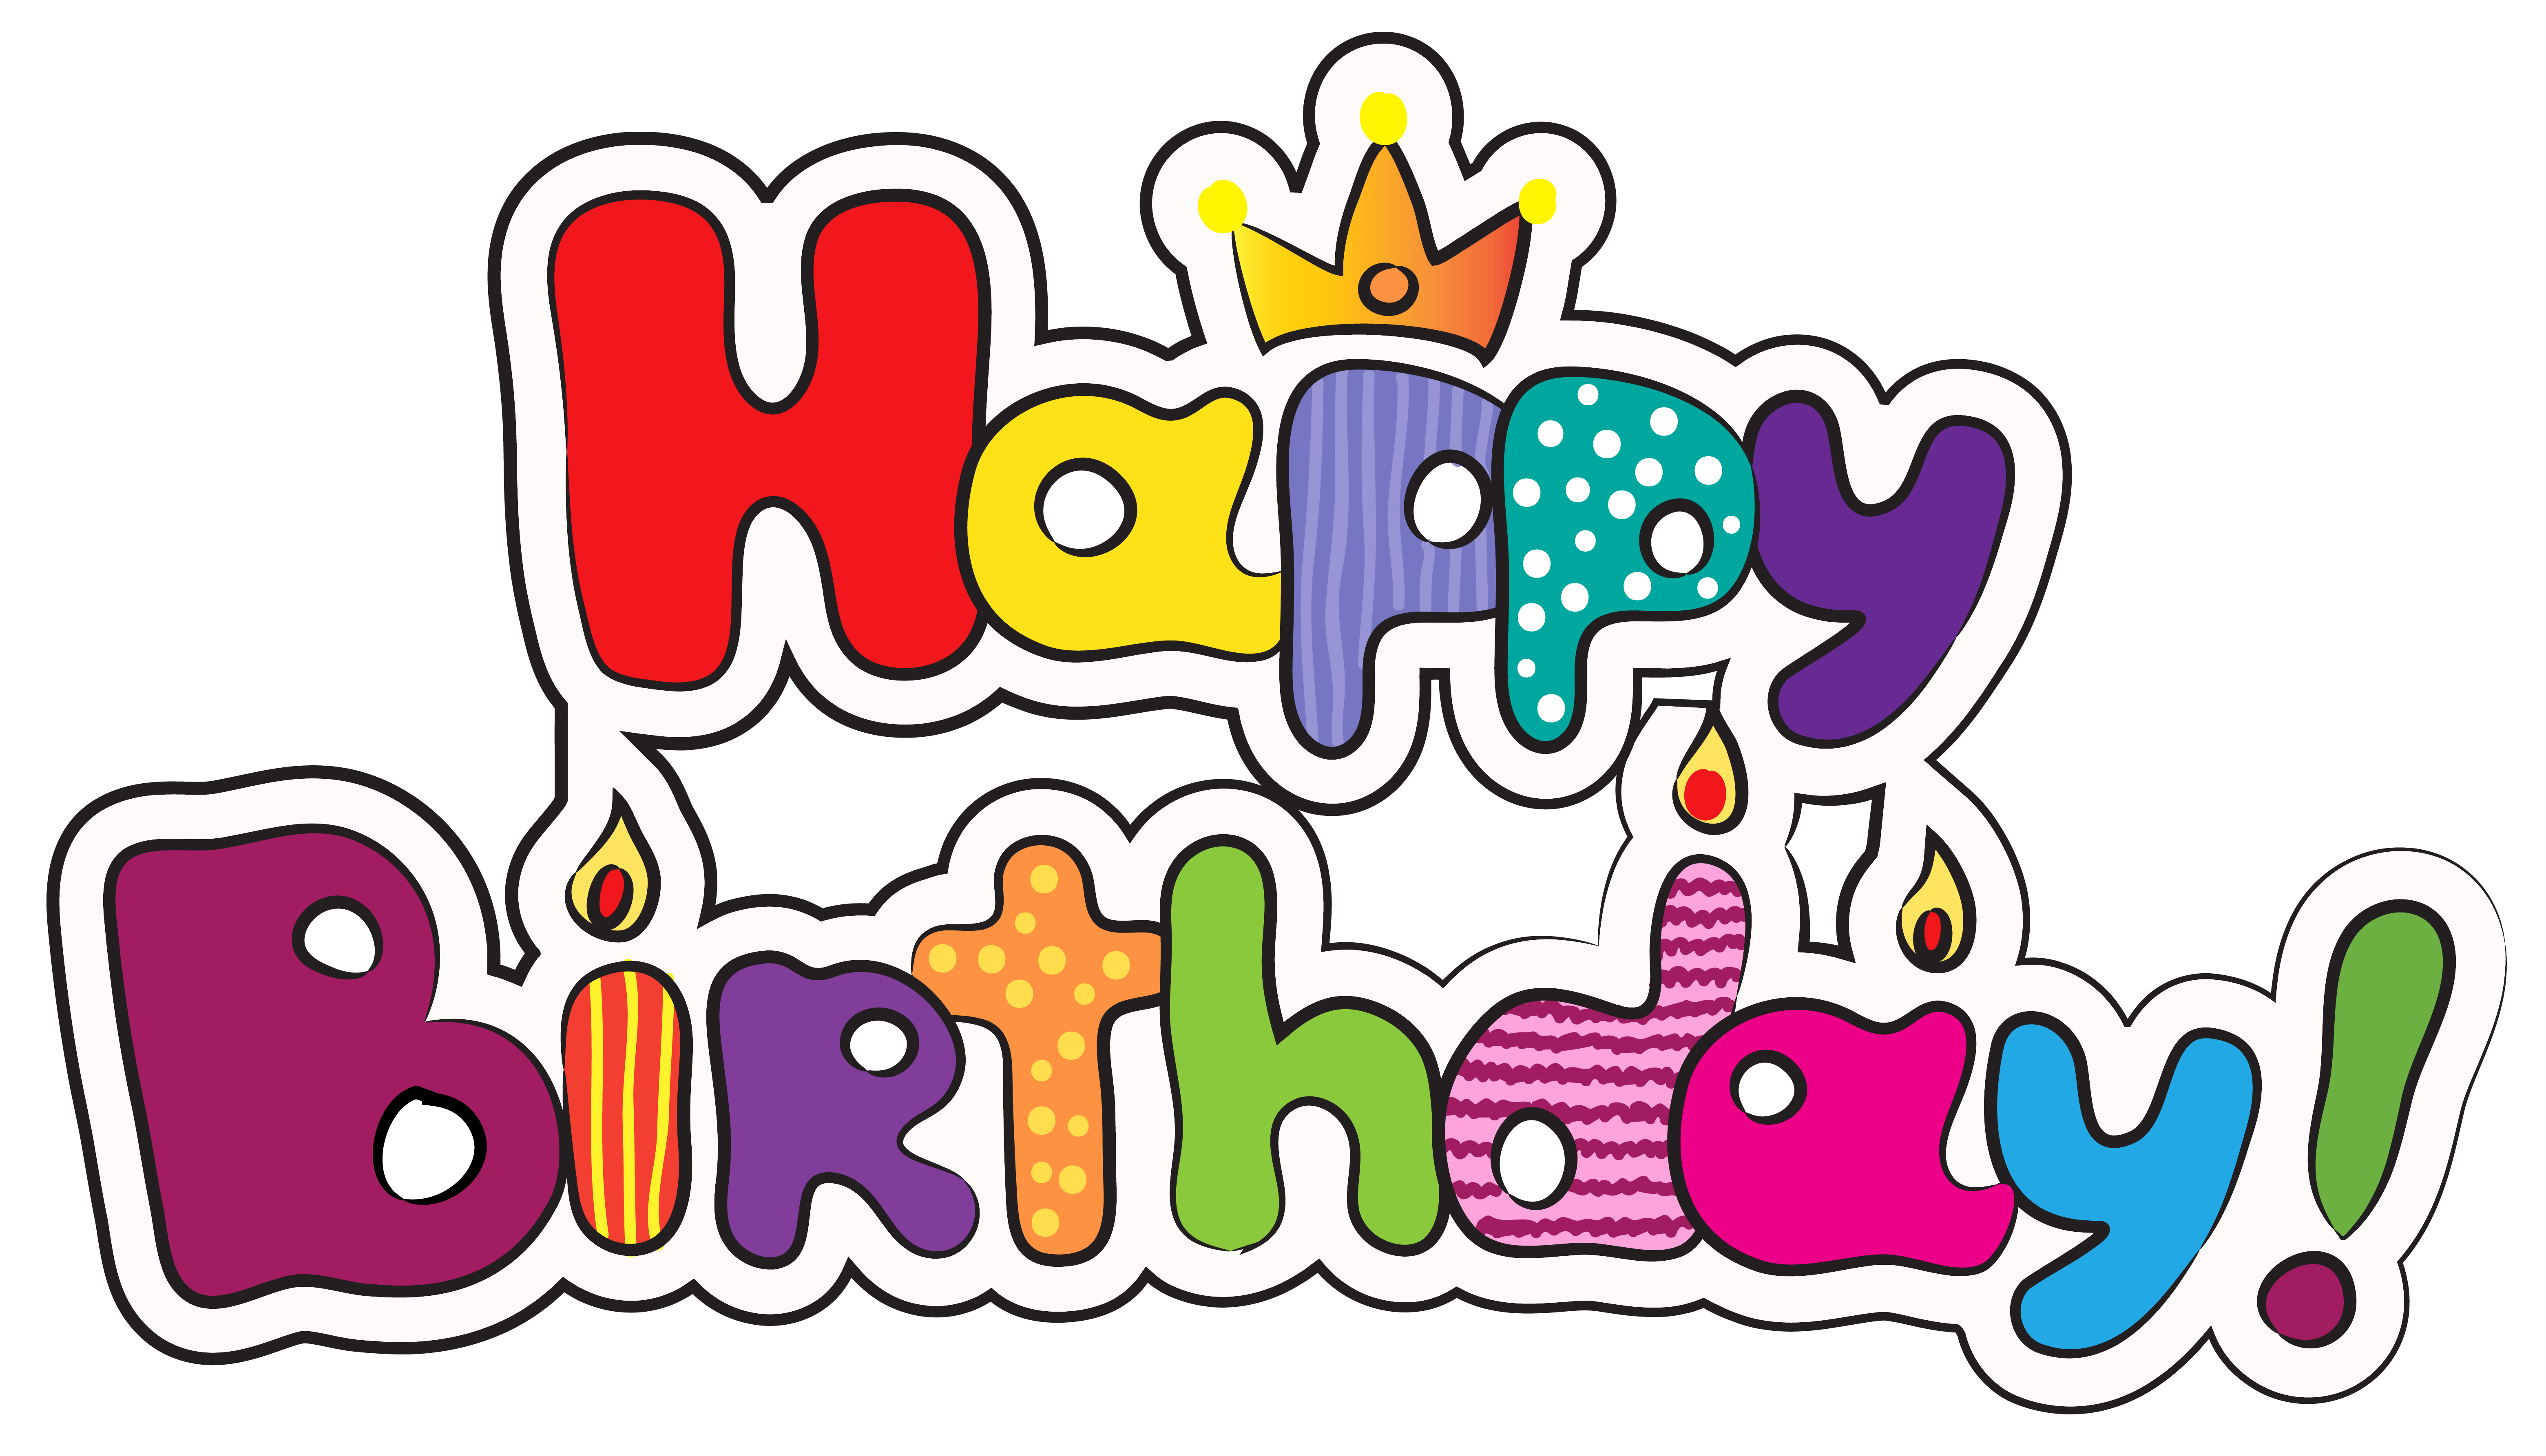 Birthday cake clip art. Png to vector free